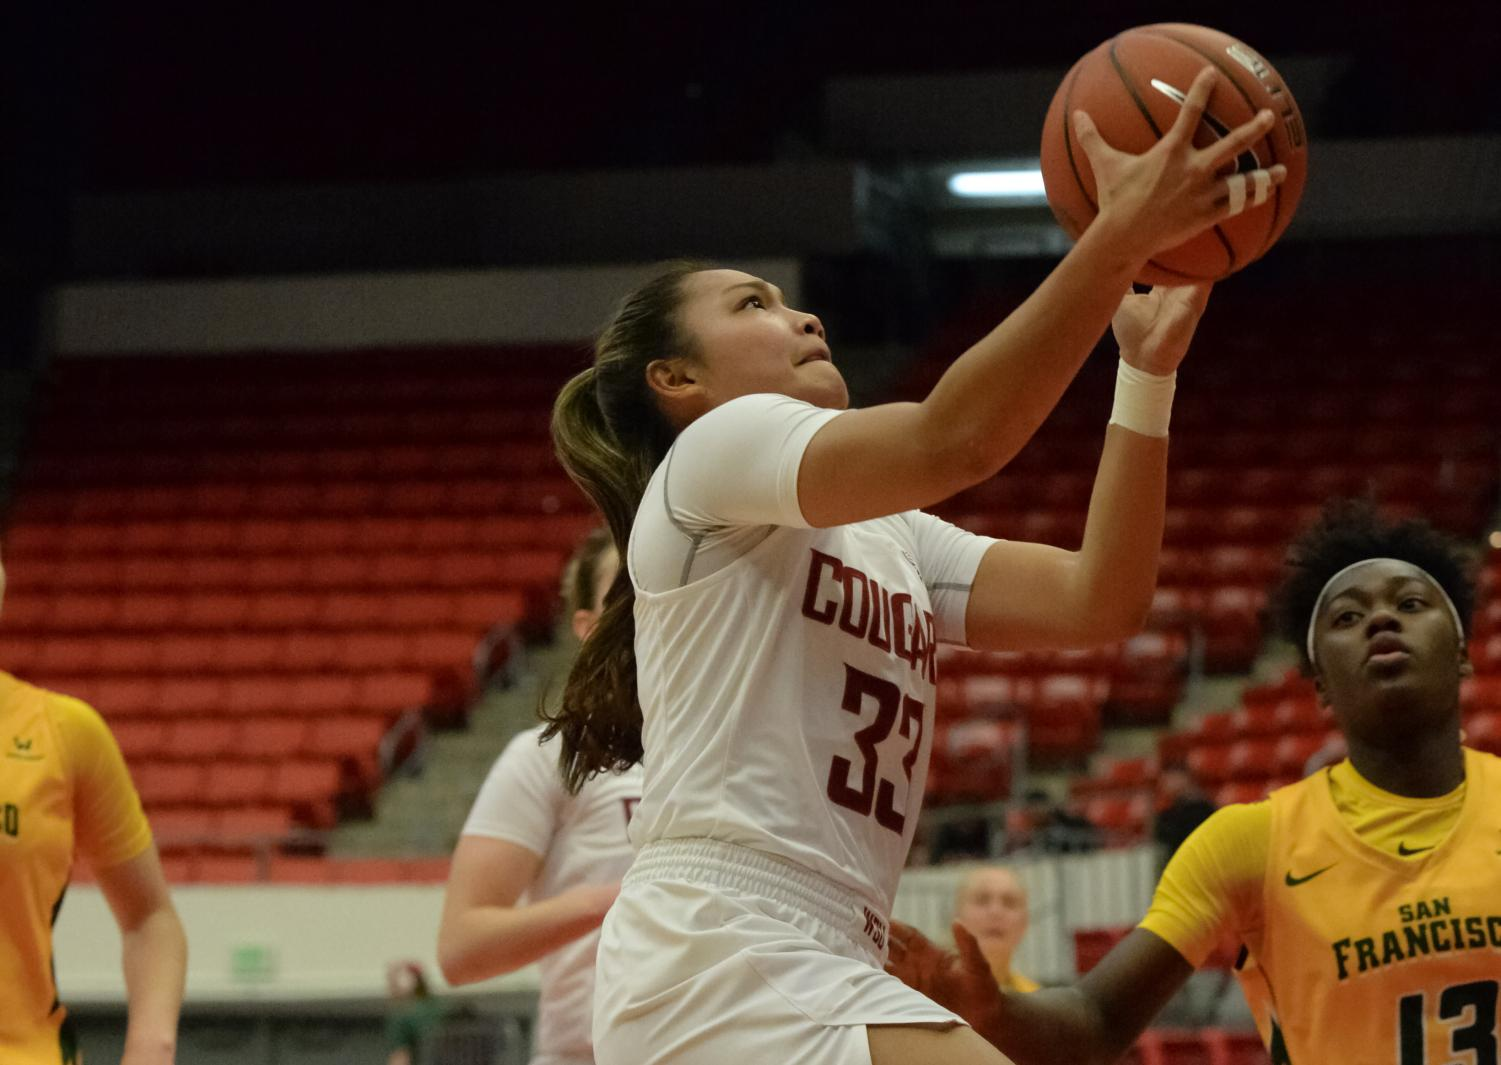 Freshman guard Cherilyn Molina runs up the court for a layup against San Francisco on Nov. 29 at Beasley Coliseum.